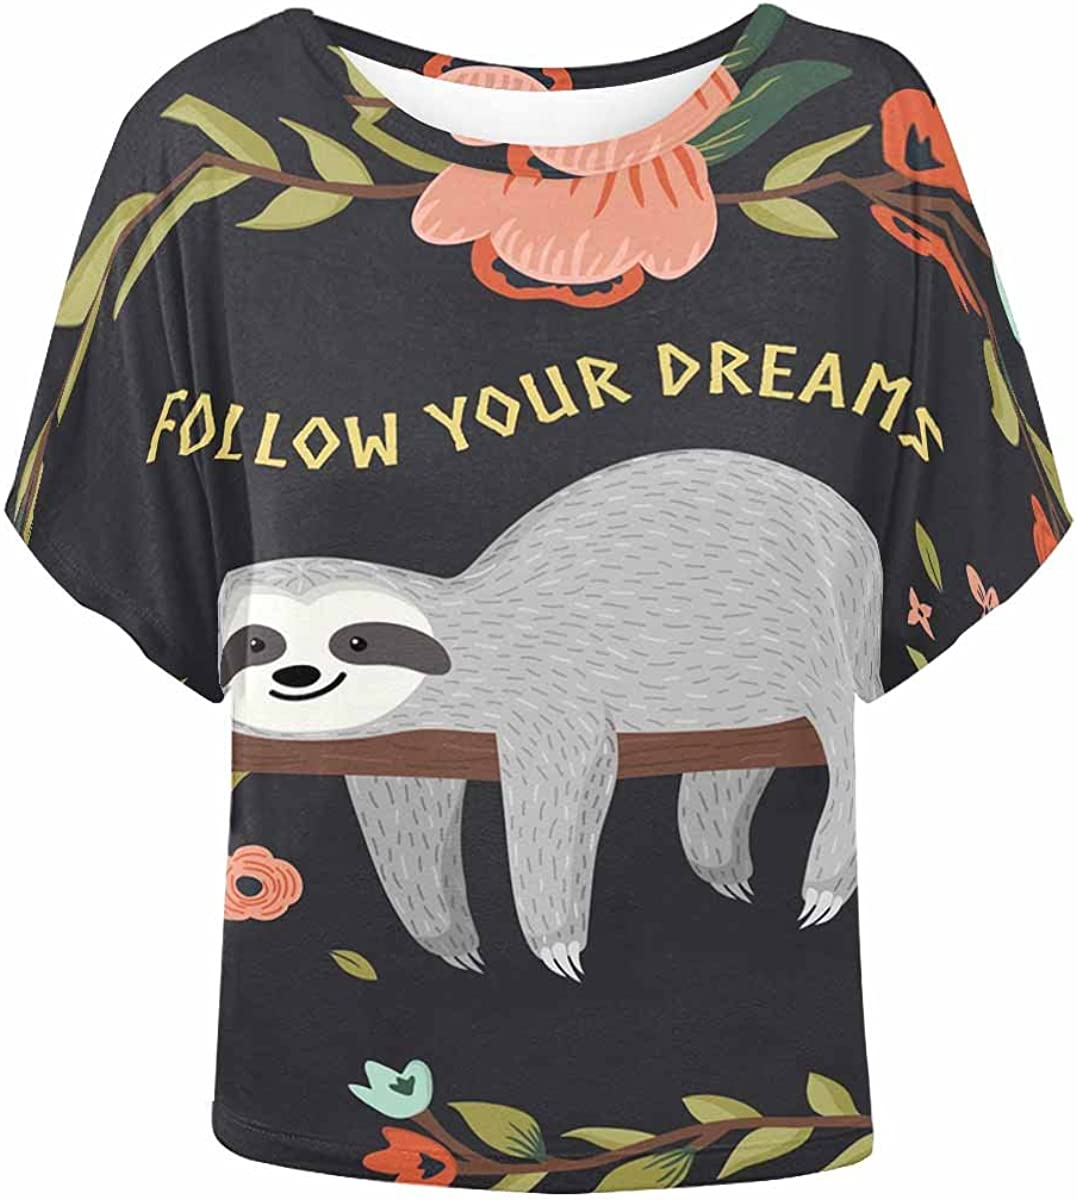 INTERESTPRINT Womens Crew Neck Sweatshirt Butterflies Cats Casual Long Sleeve Pullover Tops XS-XL